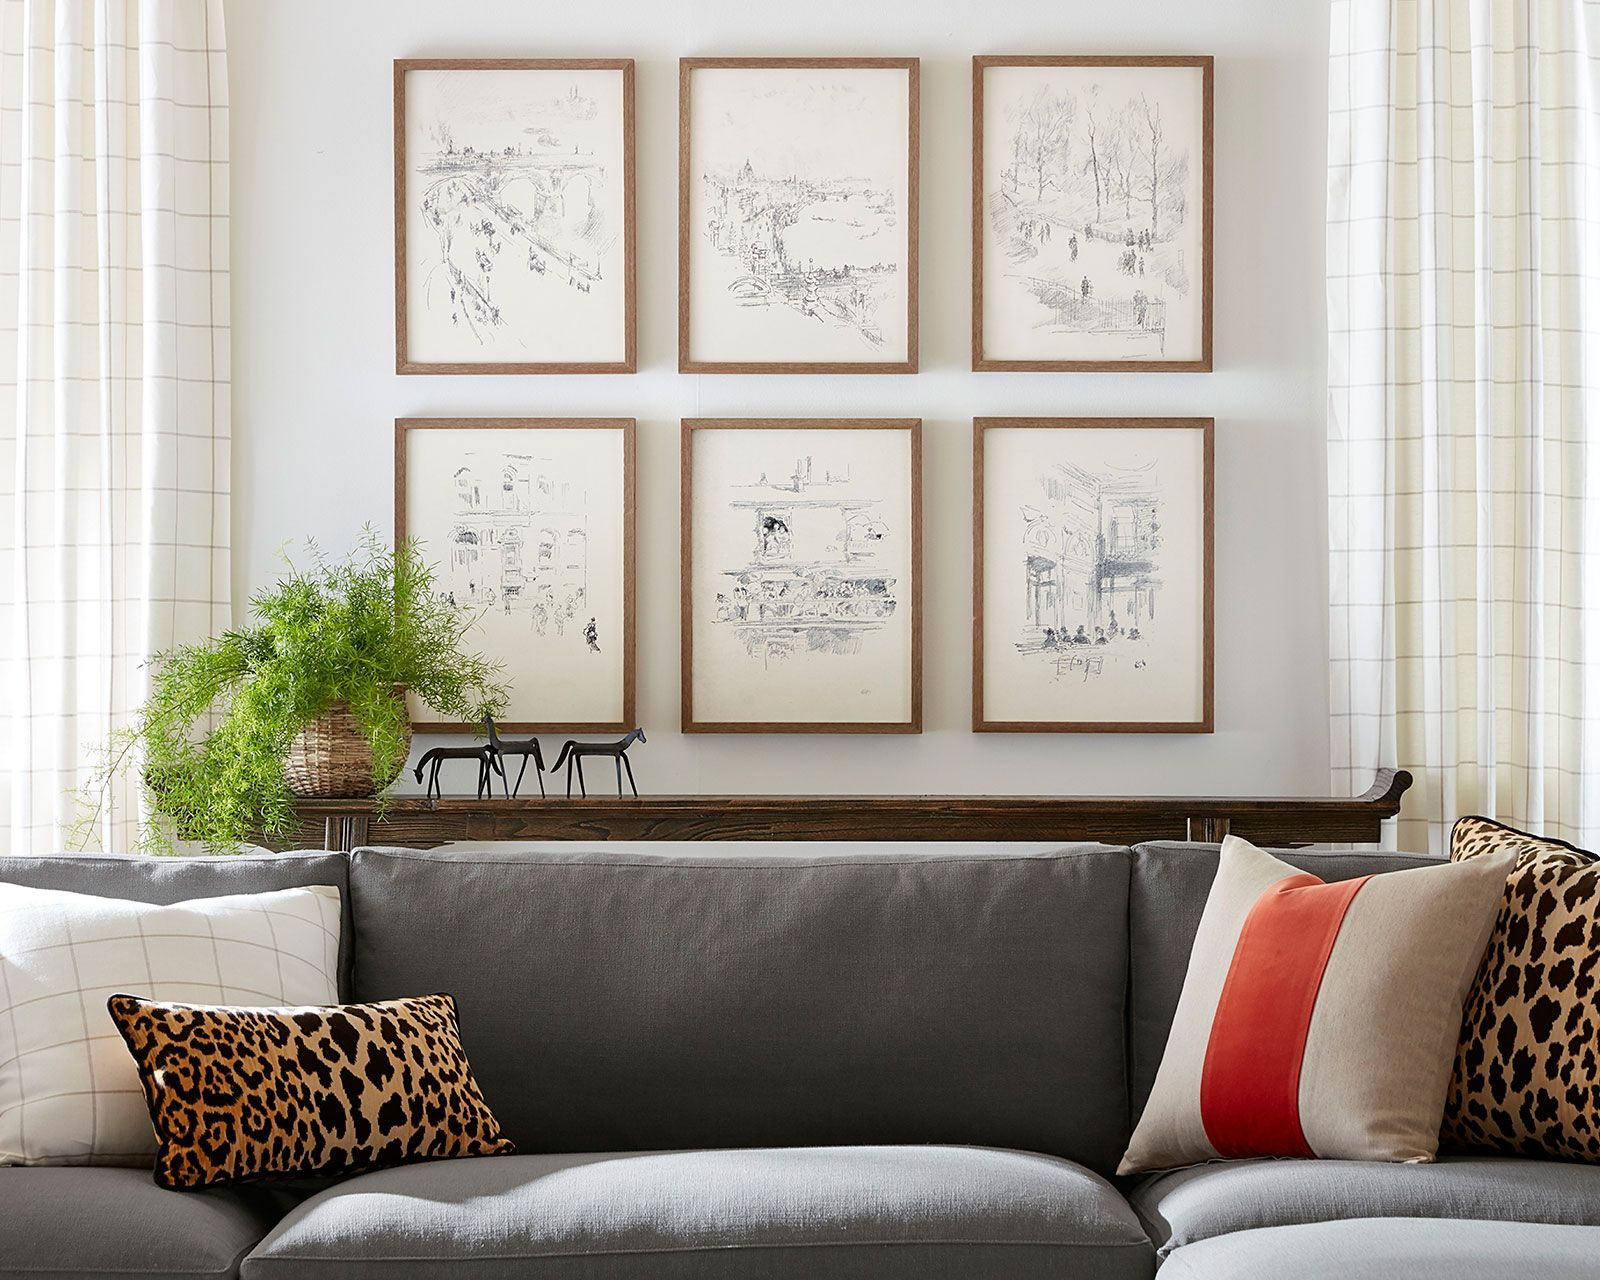 Hanging Wall Art Complete Guide How To Decorate Hanging Wall Art Frames On Wall Decor